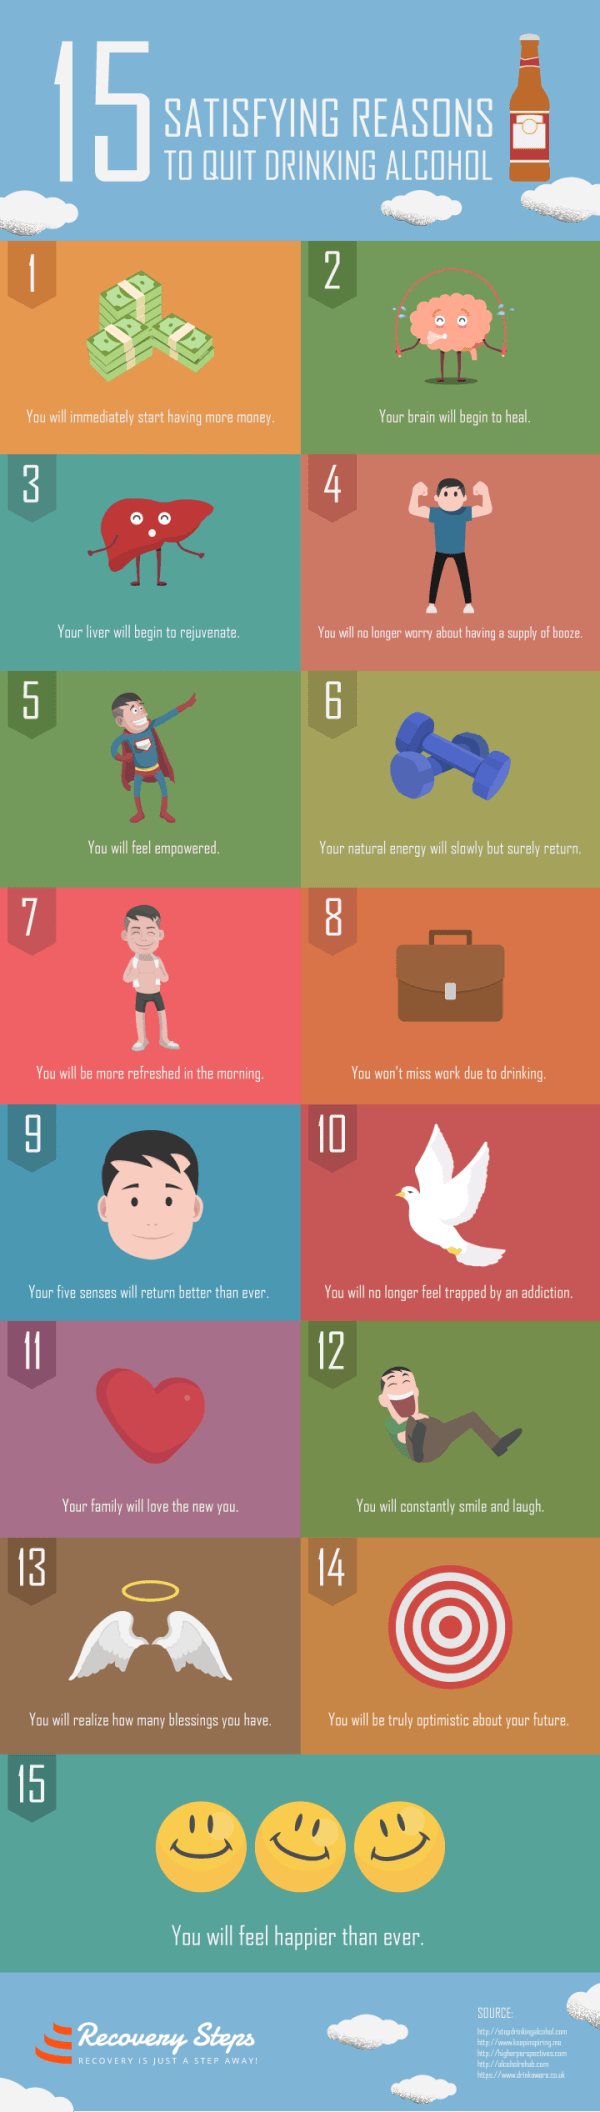 15 Reasons to Give up Alcohol Infographic